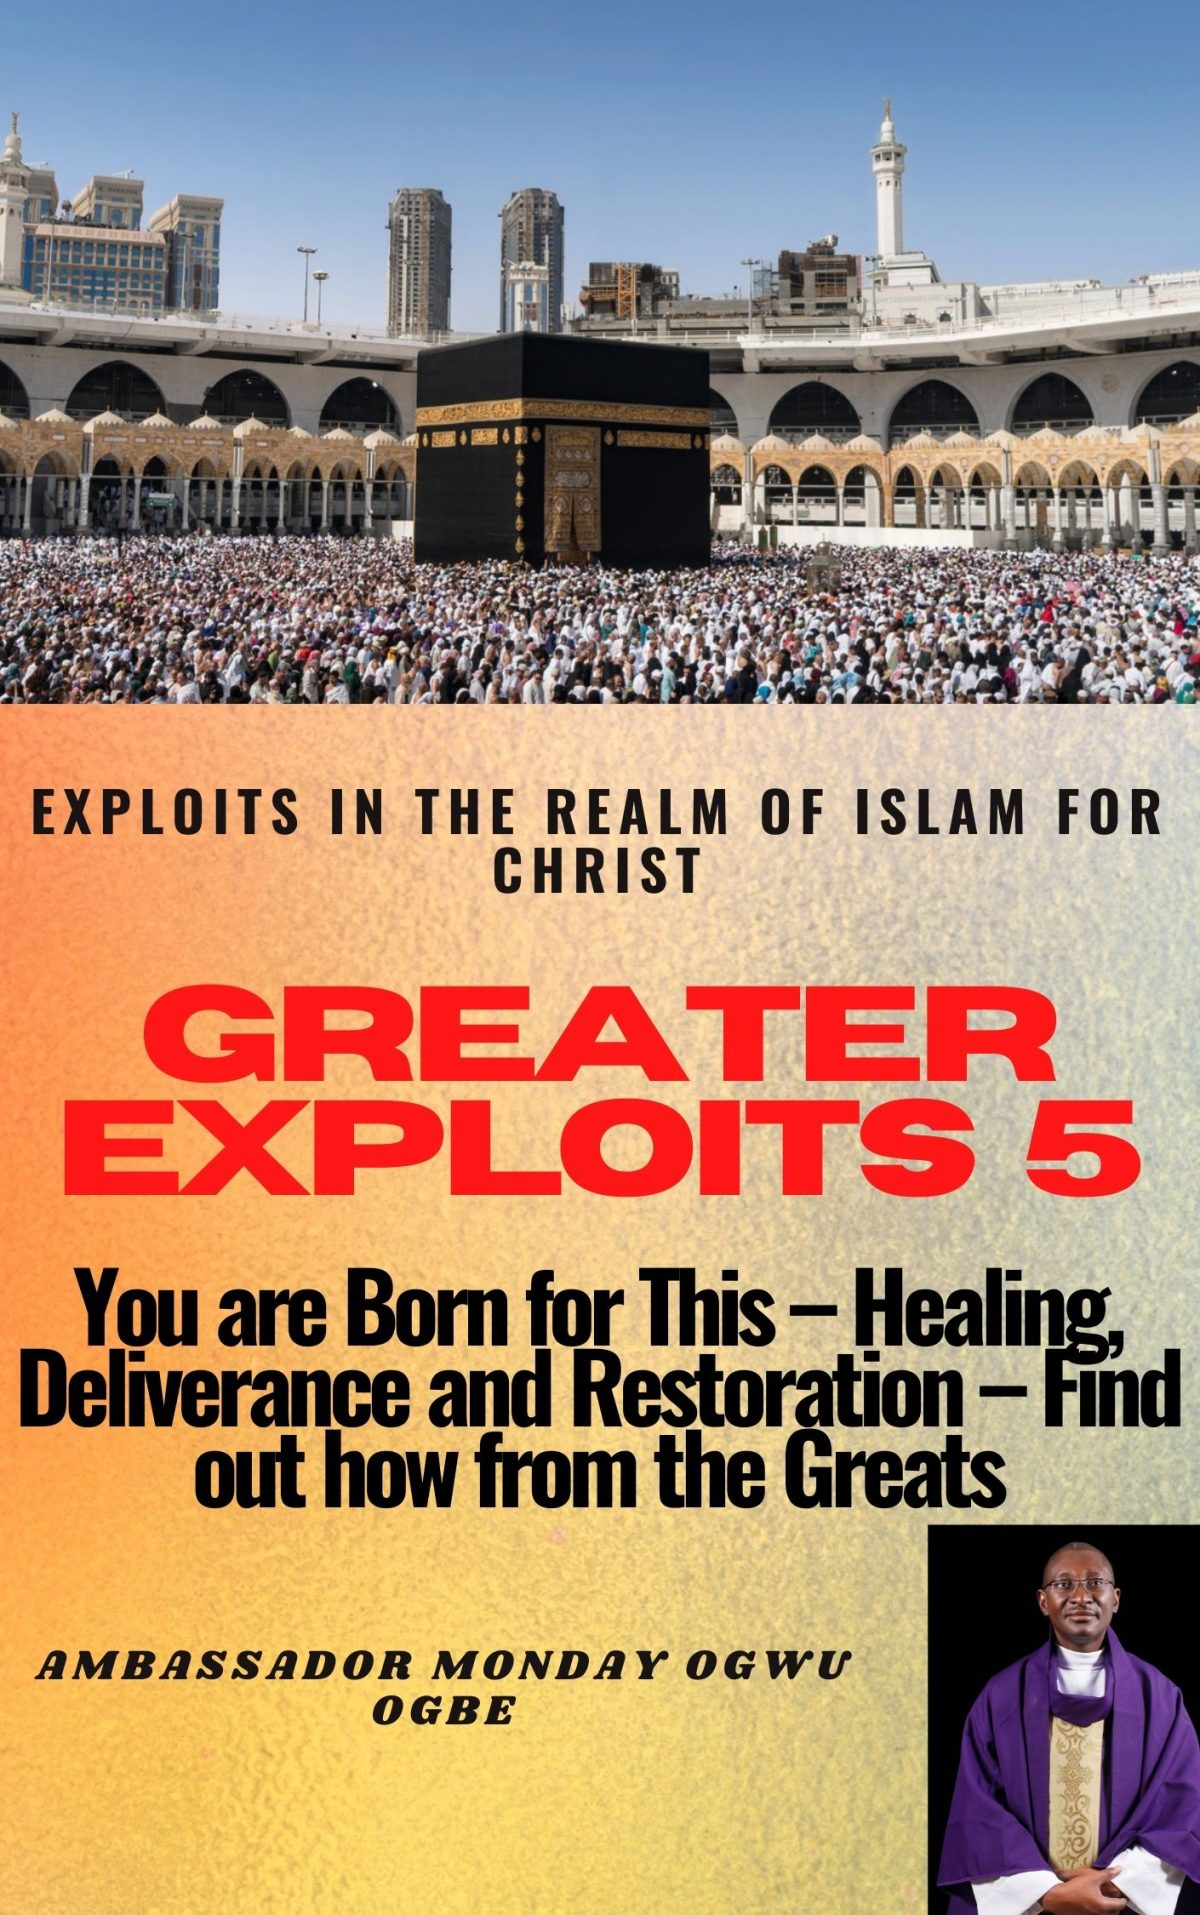 Greater Exploits 5 - Exploits in the Realm of Islam